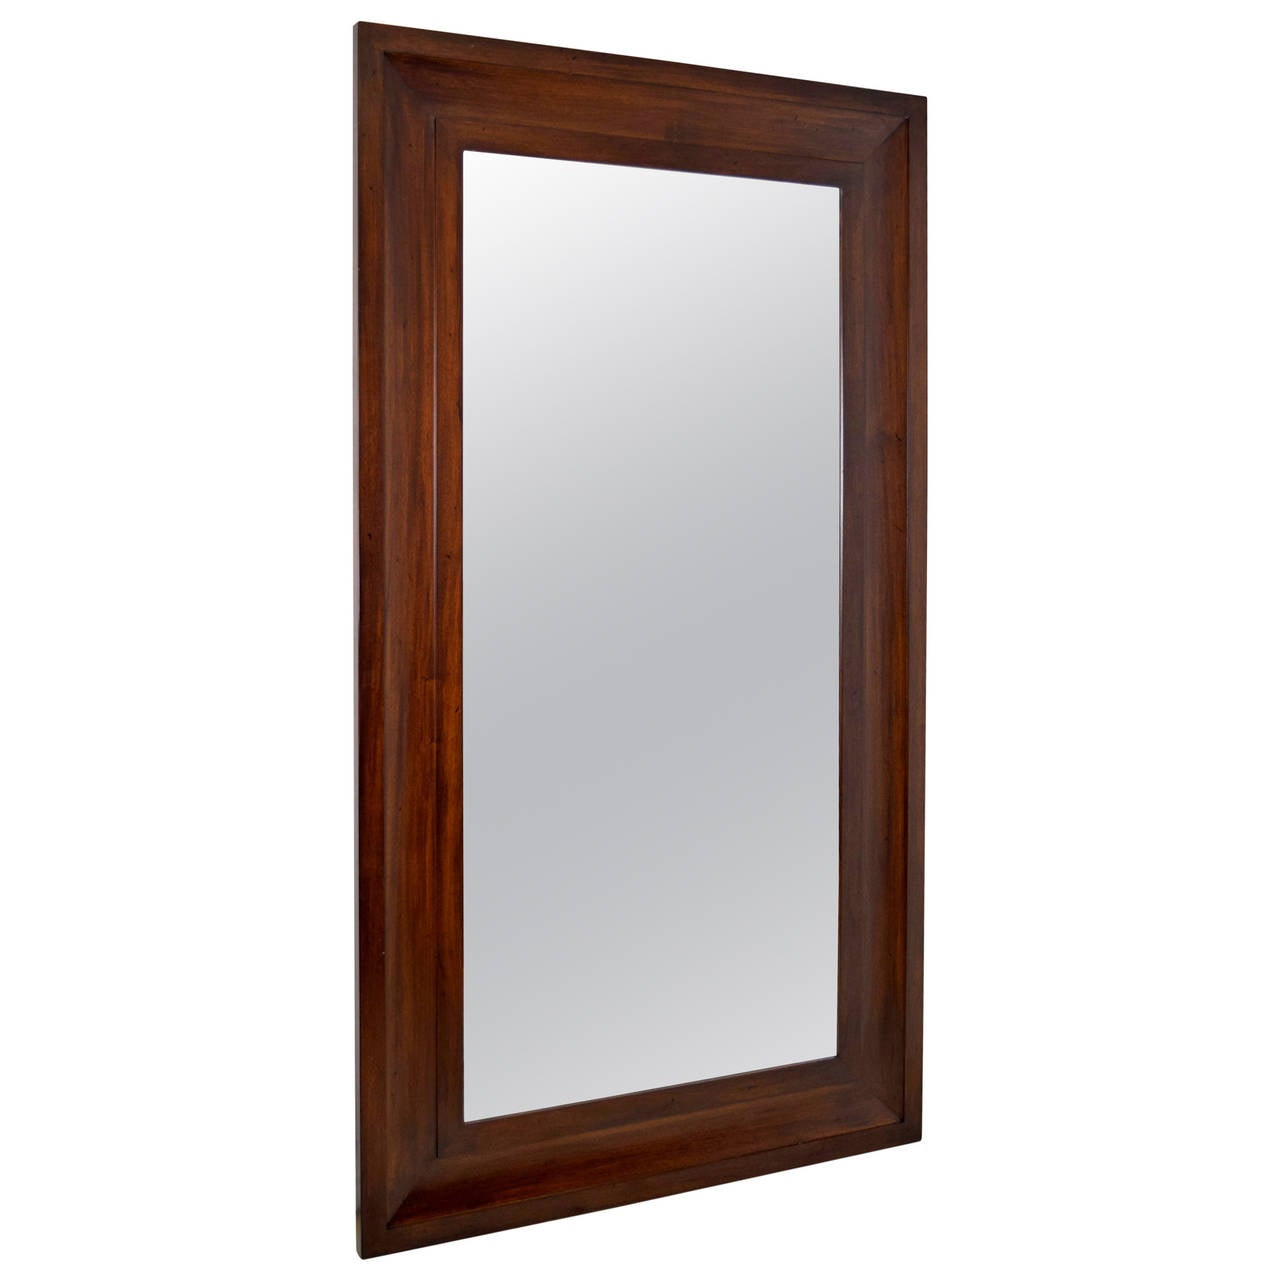 Custom very large mahogany frame wall mirror at 1stdibs for Large framed mirrors